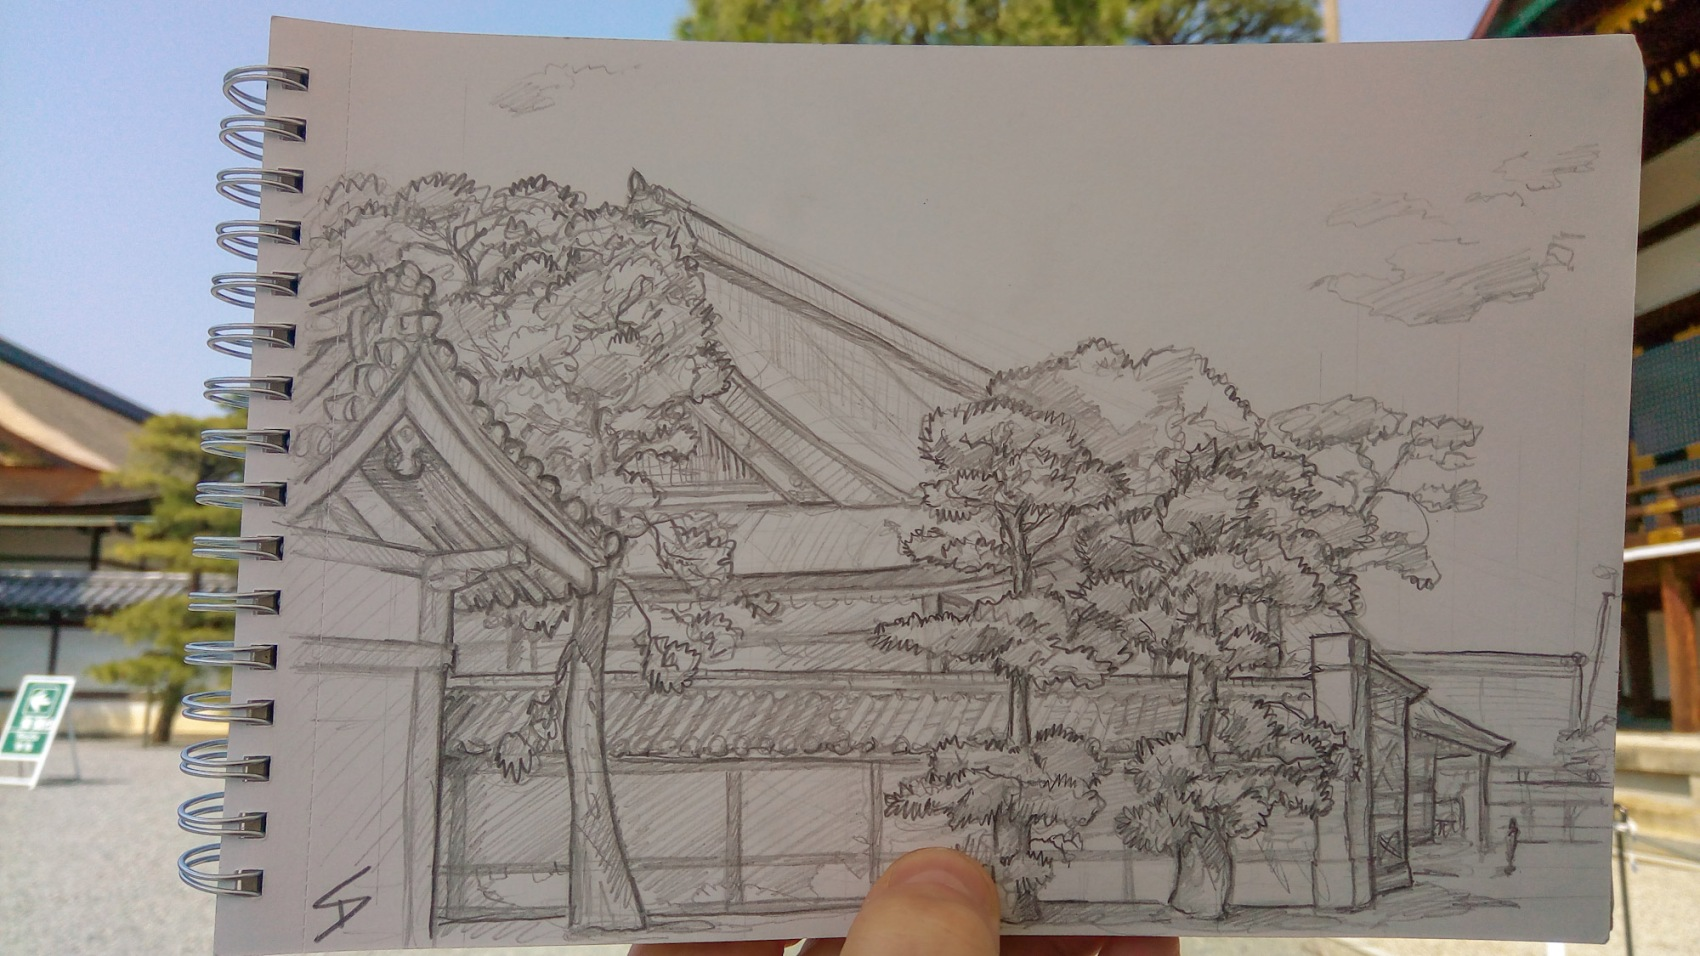 Urban photo art – Kamigyo Ward, Kyoto, Japan. 'Kyoto Imperial Palace.' Complete image from my latest travel art blog article 'Sakura Japan.' Now online - sketchbookexplorer.com @davidasutton @sketchbookexplorer Facebook.com/davidanthonysutton #sketch #drawing #art #japan #kyoto #sakura #kyotoimperialpalace #samurai #travel #travelblog #cherryblossom #cherryblossomseason